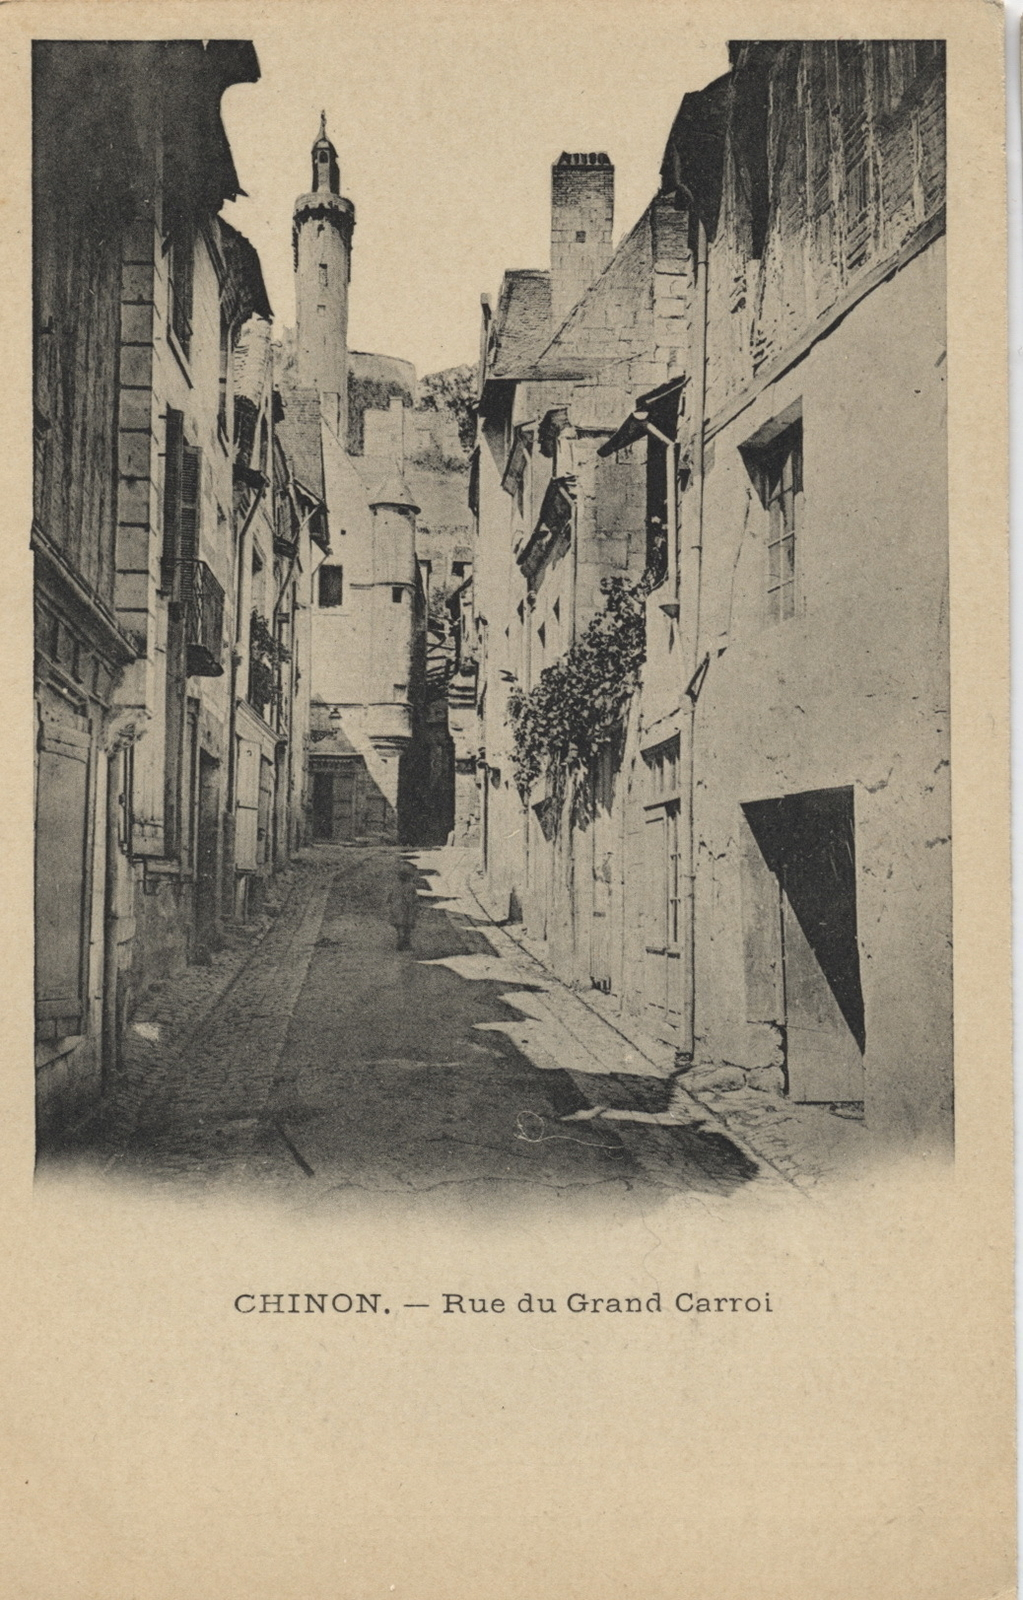 Chinon - Rue du grand Carroi